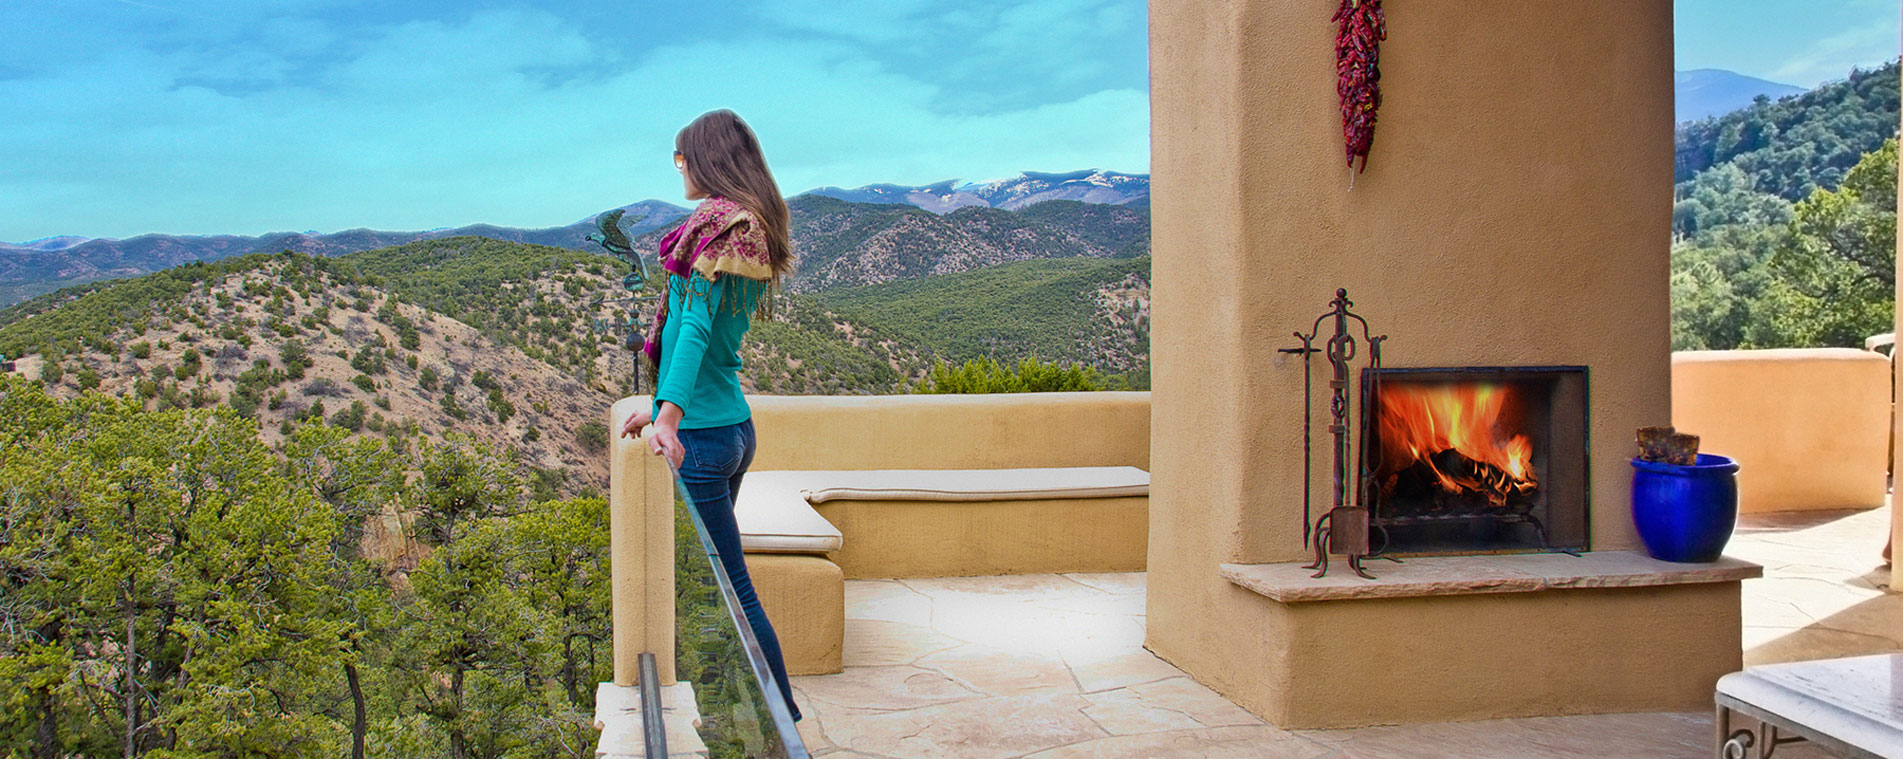 Vacation rentals vs hotels whats the big difference for Santa fe new mexico cabin rentals